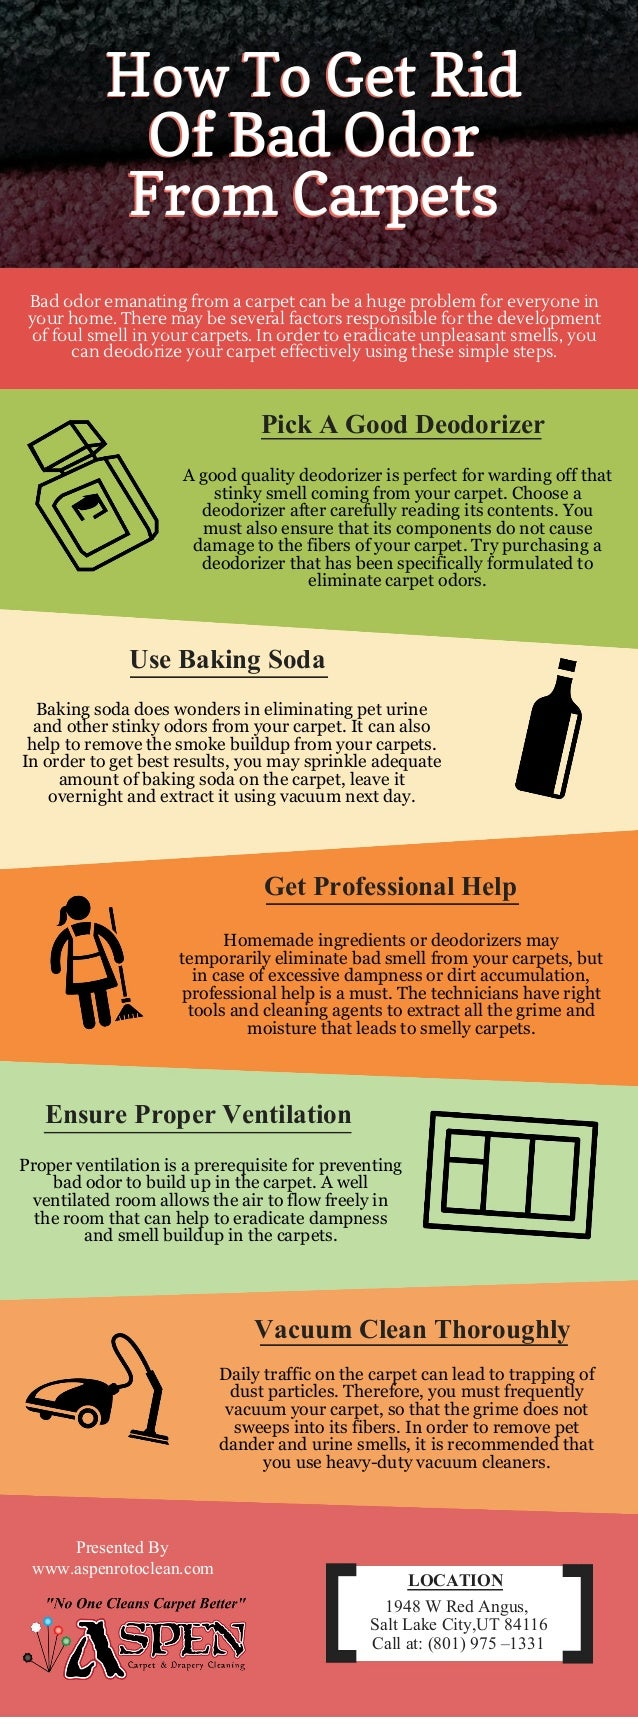 How To Get Rid Of Bad Odor